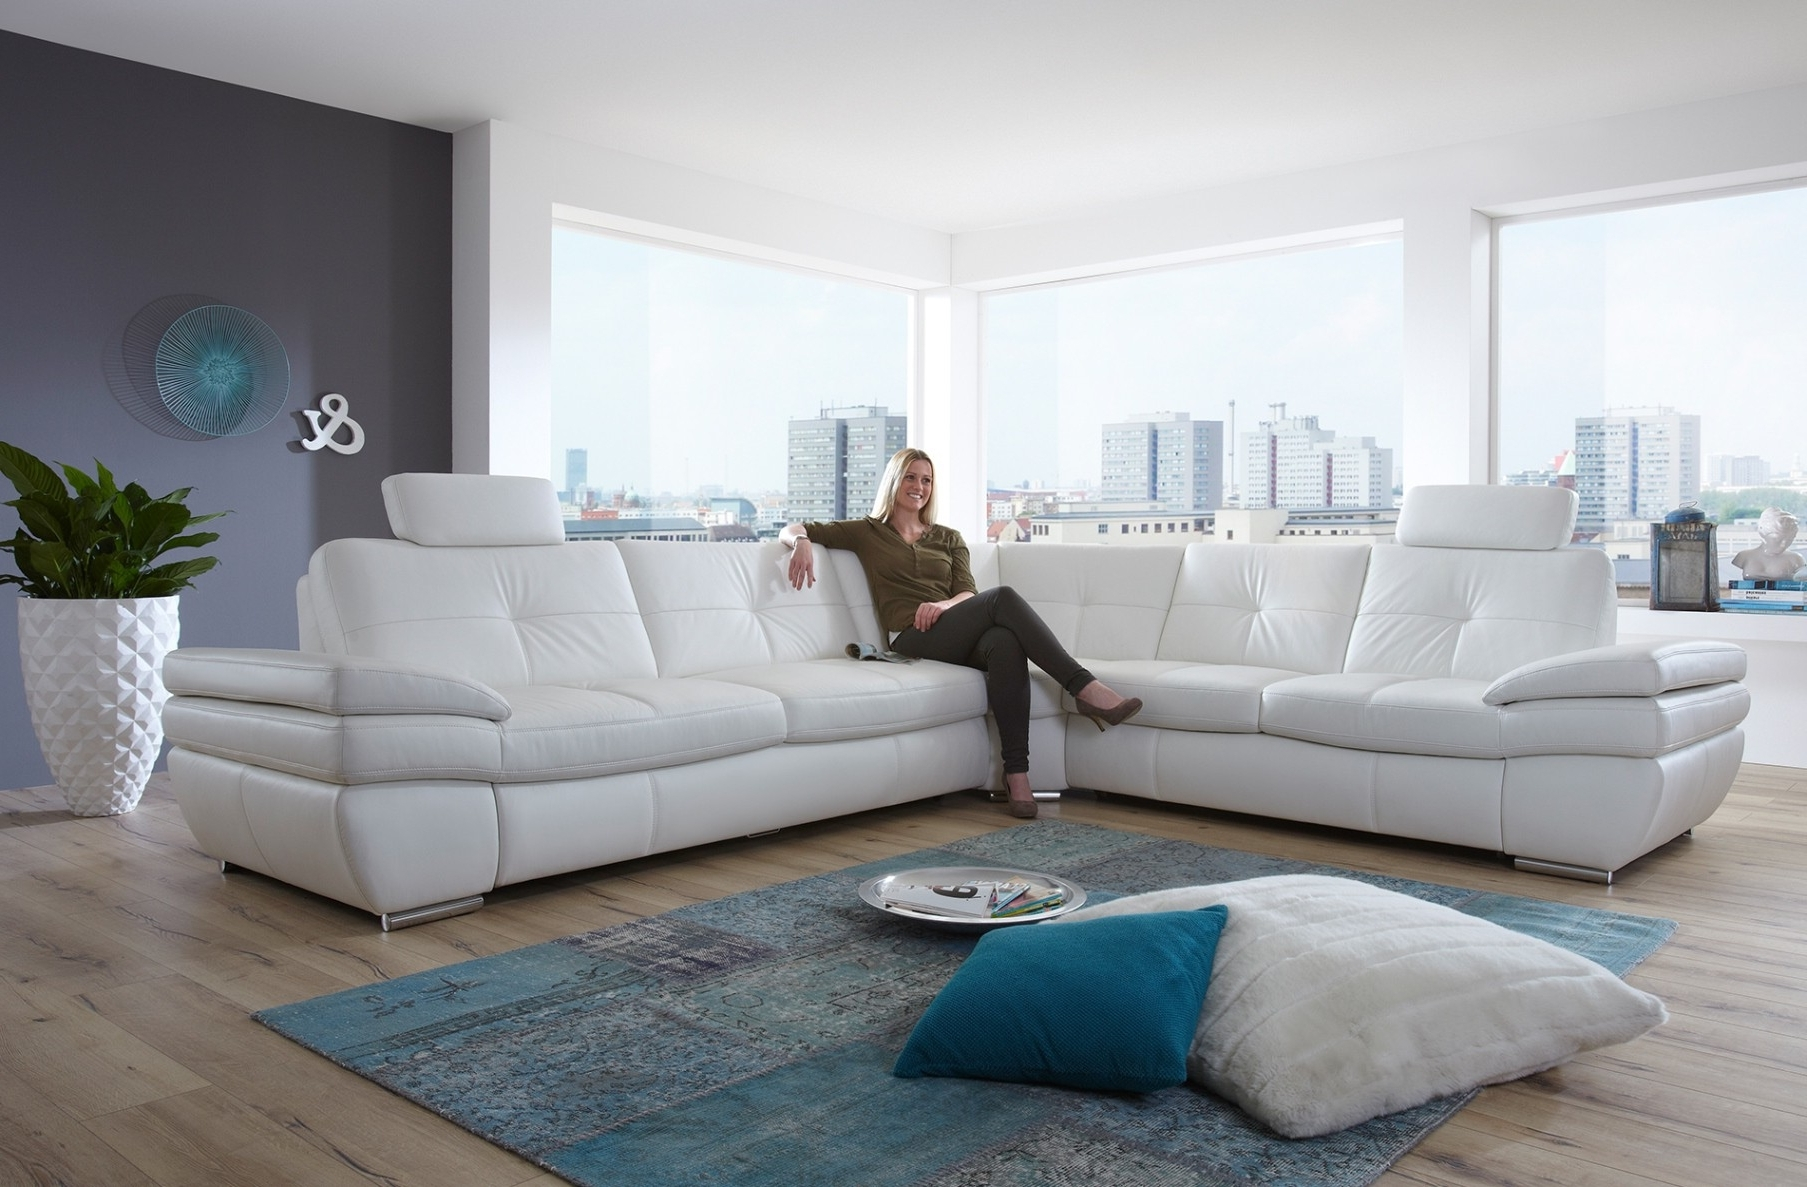 Most Recent Everett Wa Sectional Sofas Regarding Furniture : Sectional Sleeper Sofa Queen Has One Of The Best Kind (View 2 of 20)